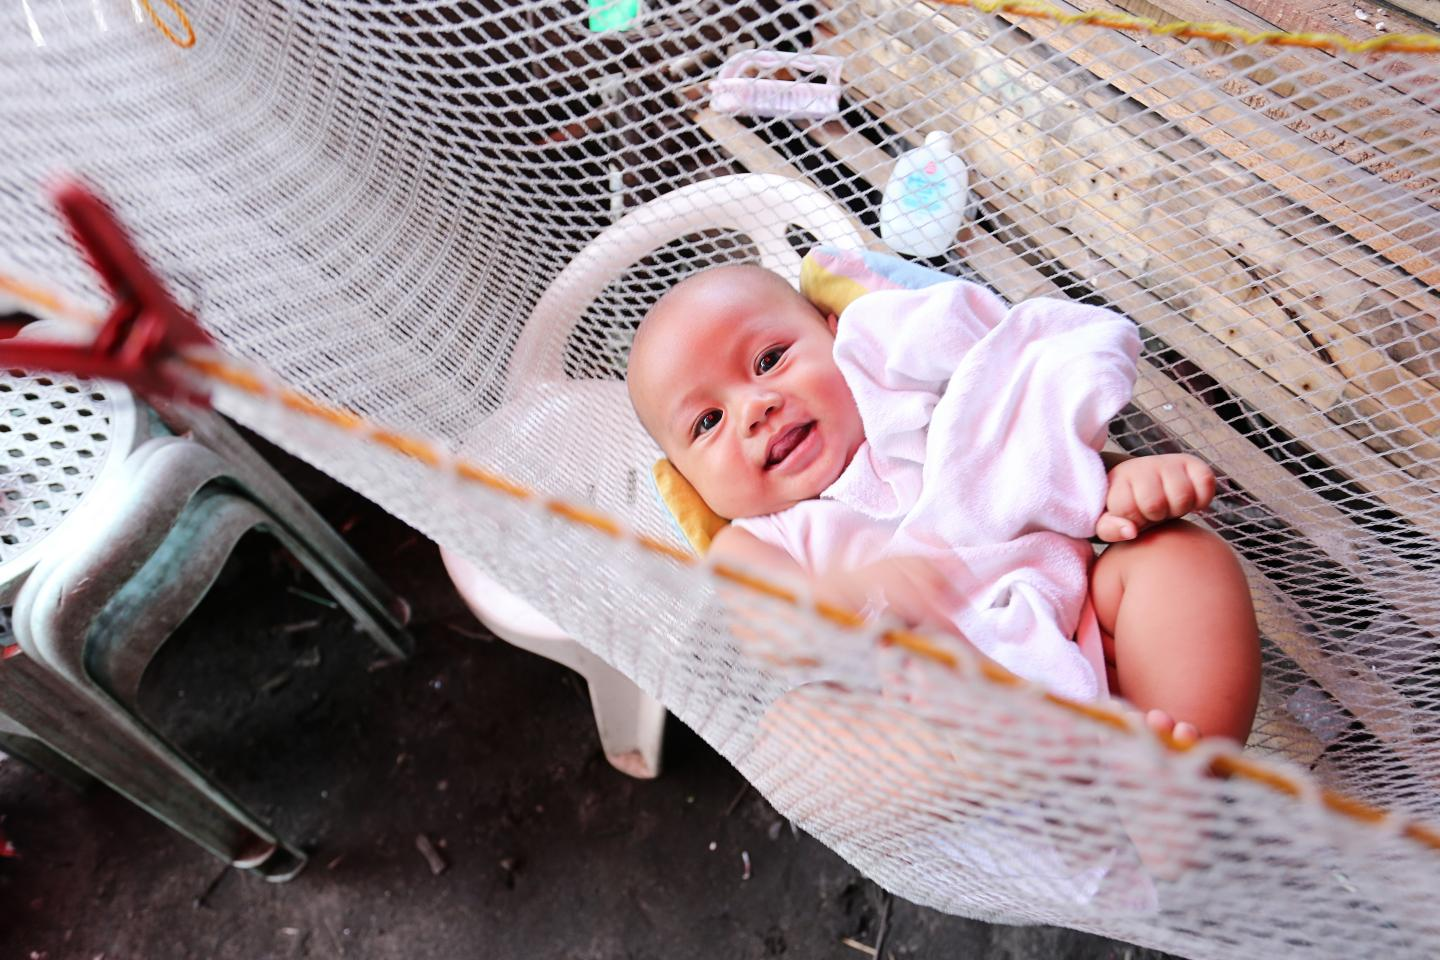 A smiling baby on a hammock